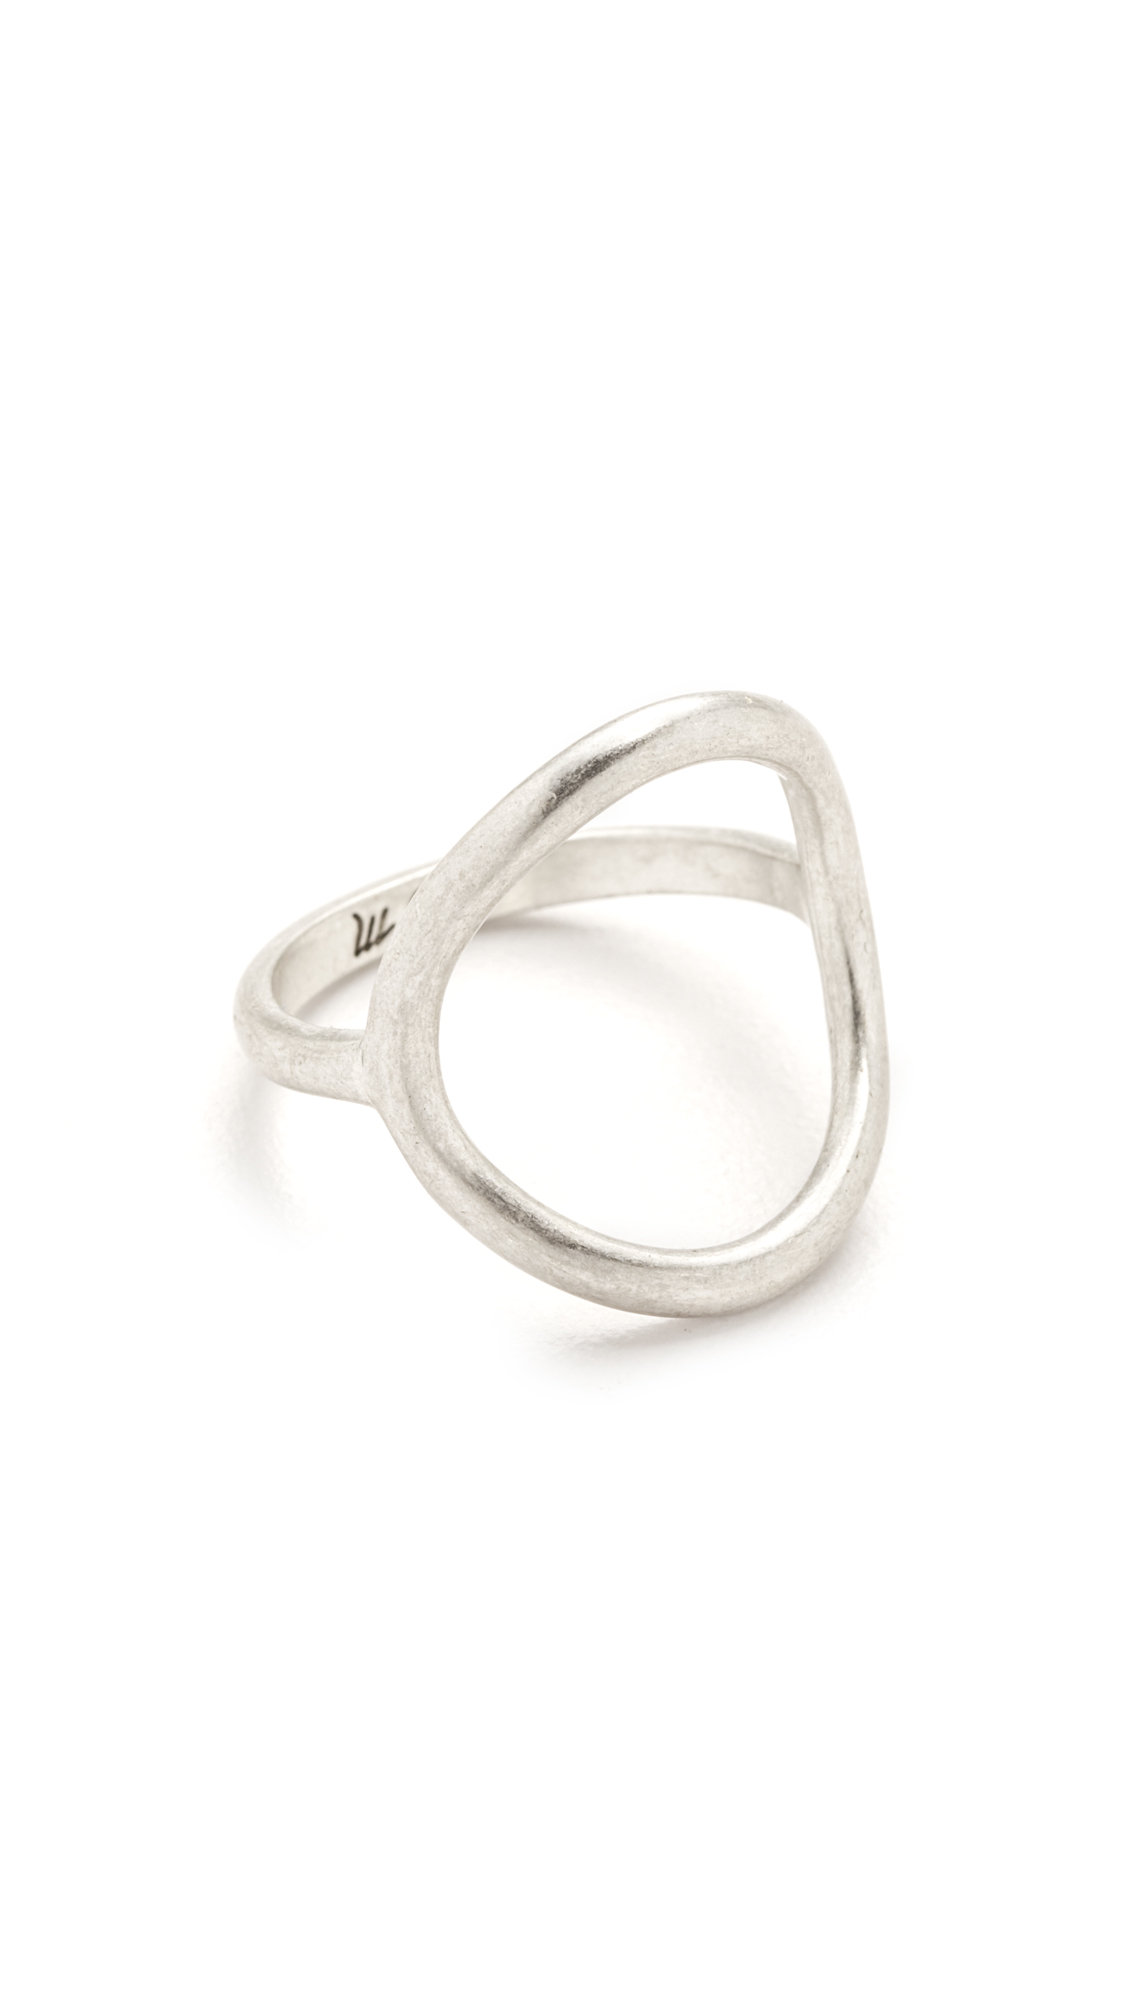 Madewell Ceremony Circle Ring - Dark Silver